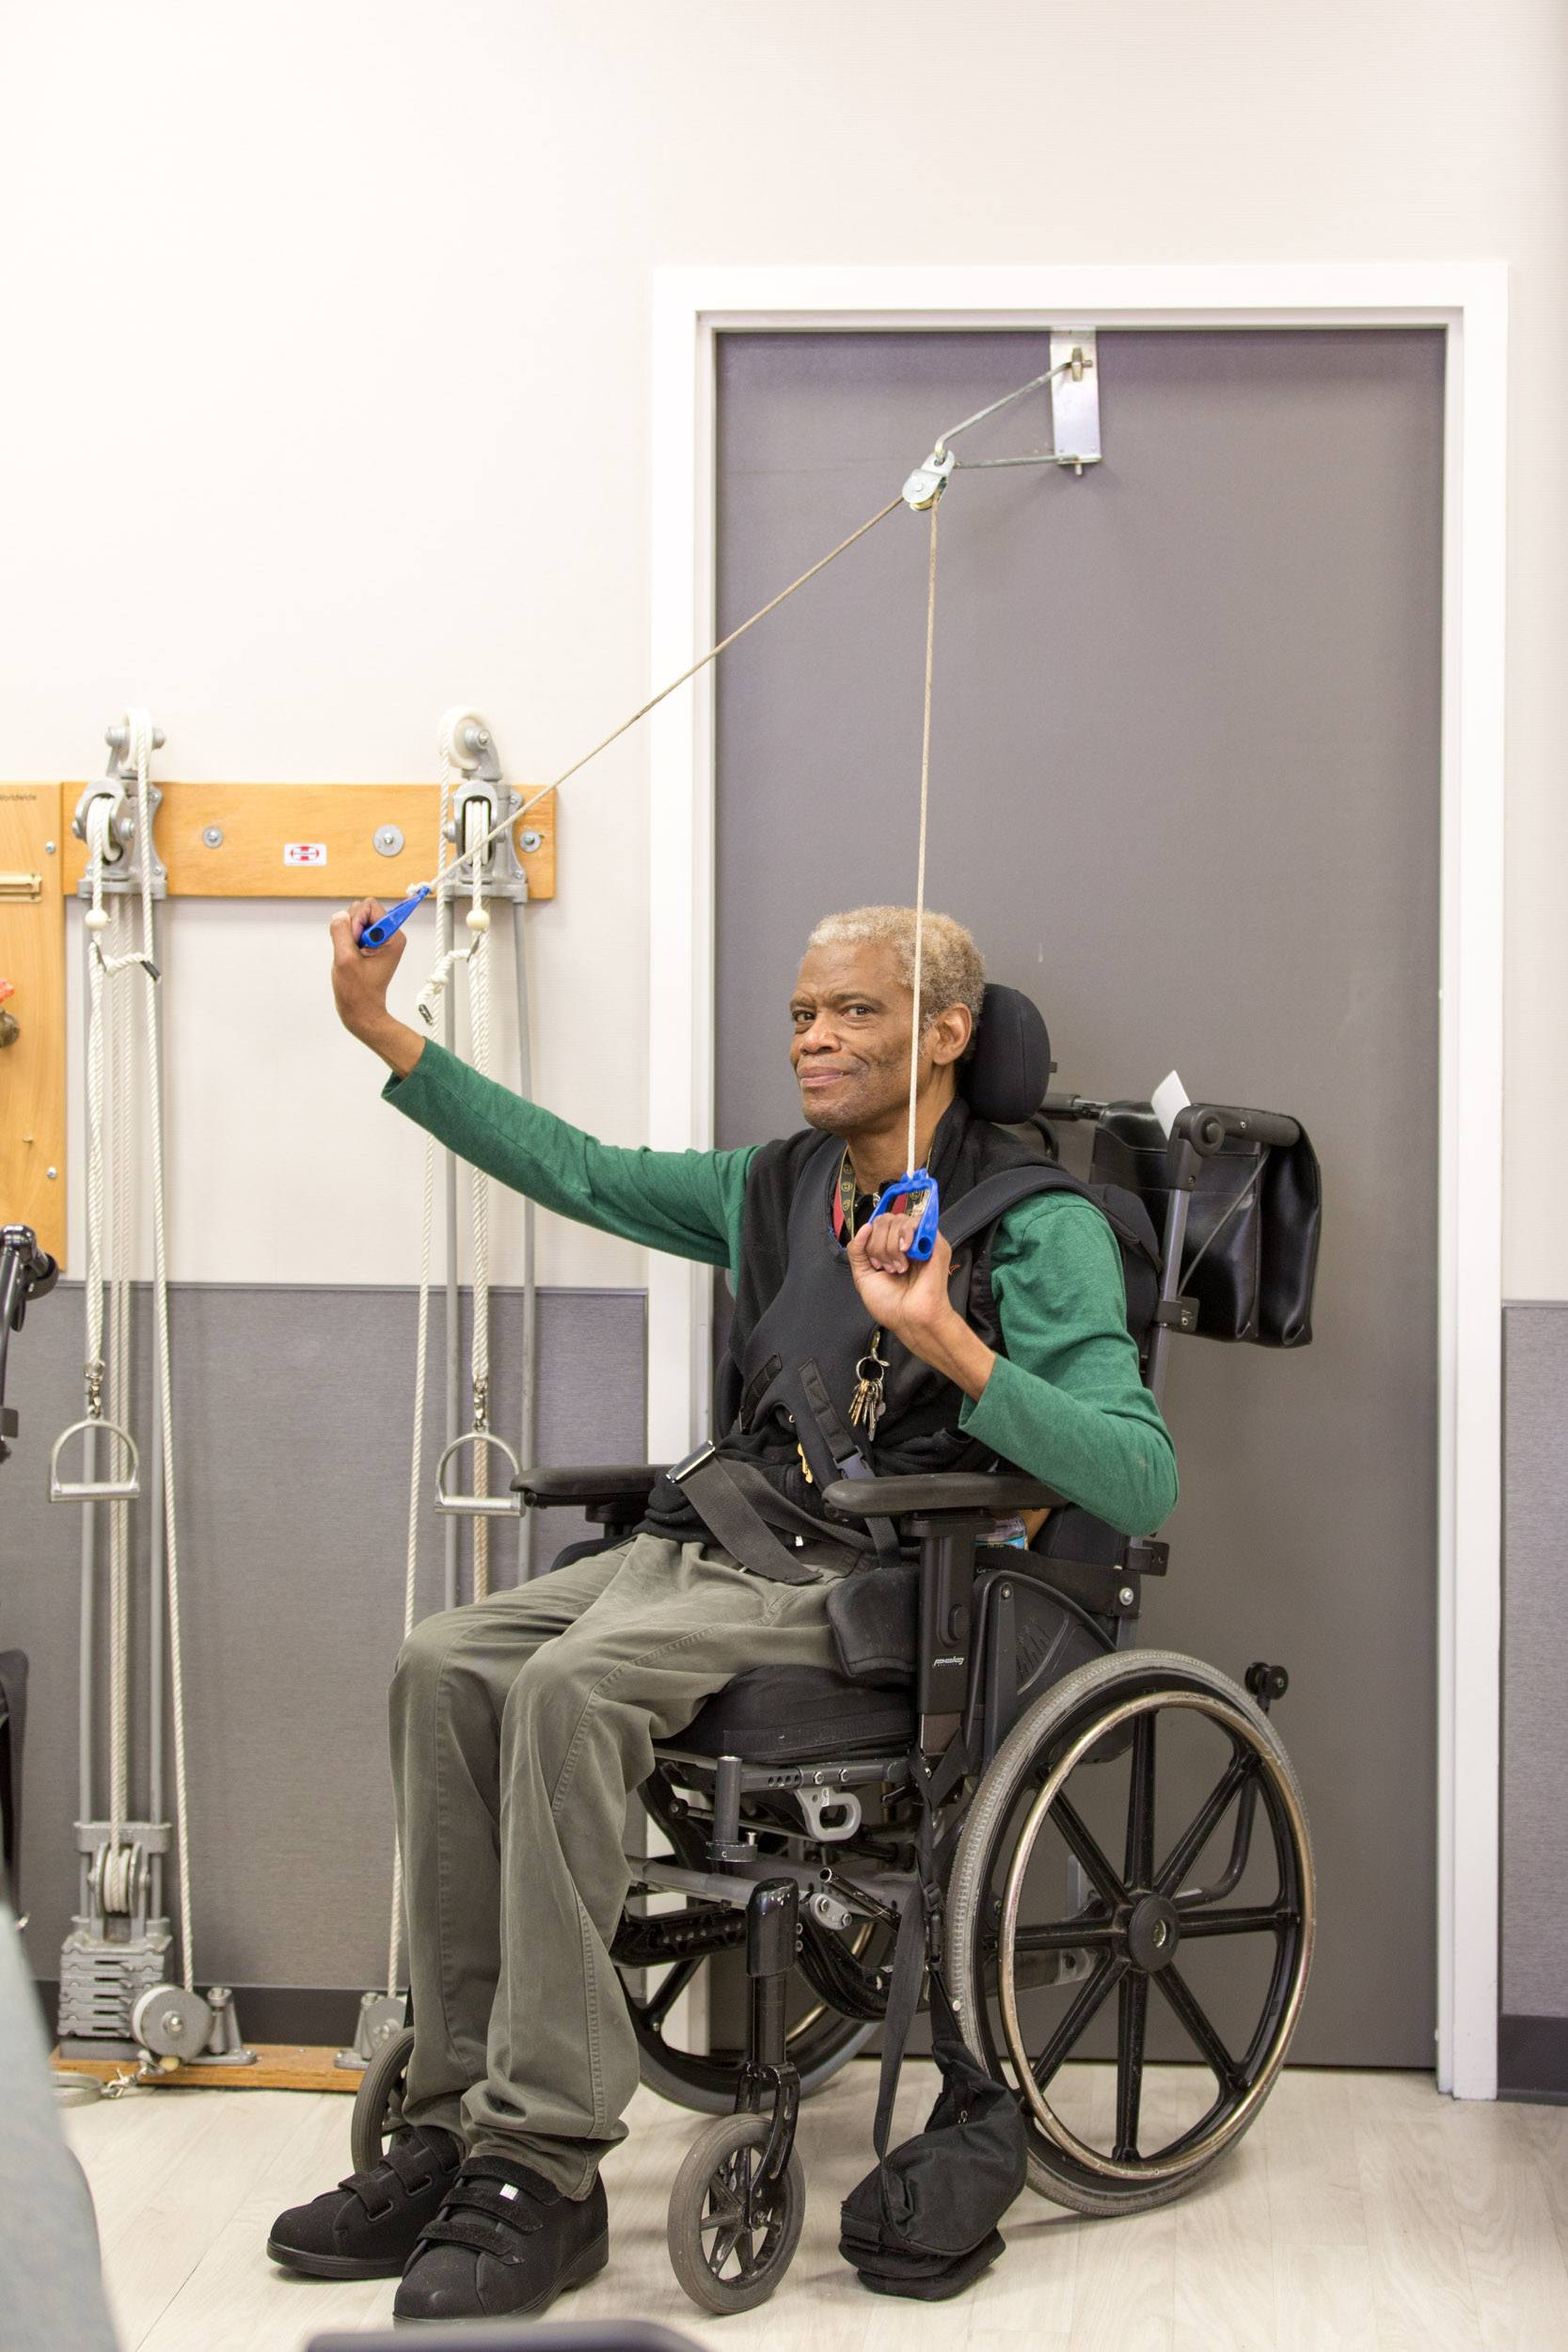 rehabilitation physical therapy fairview adult day care brooklyn new york gym